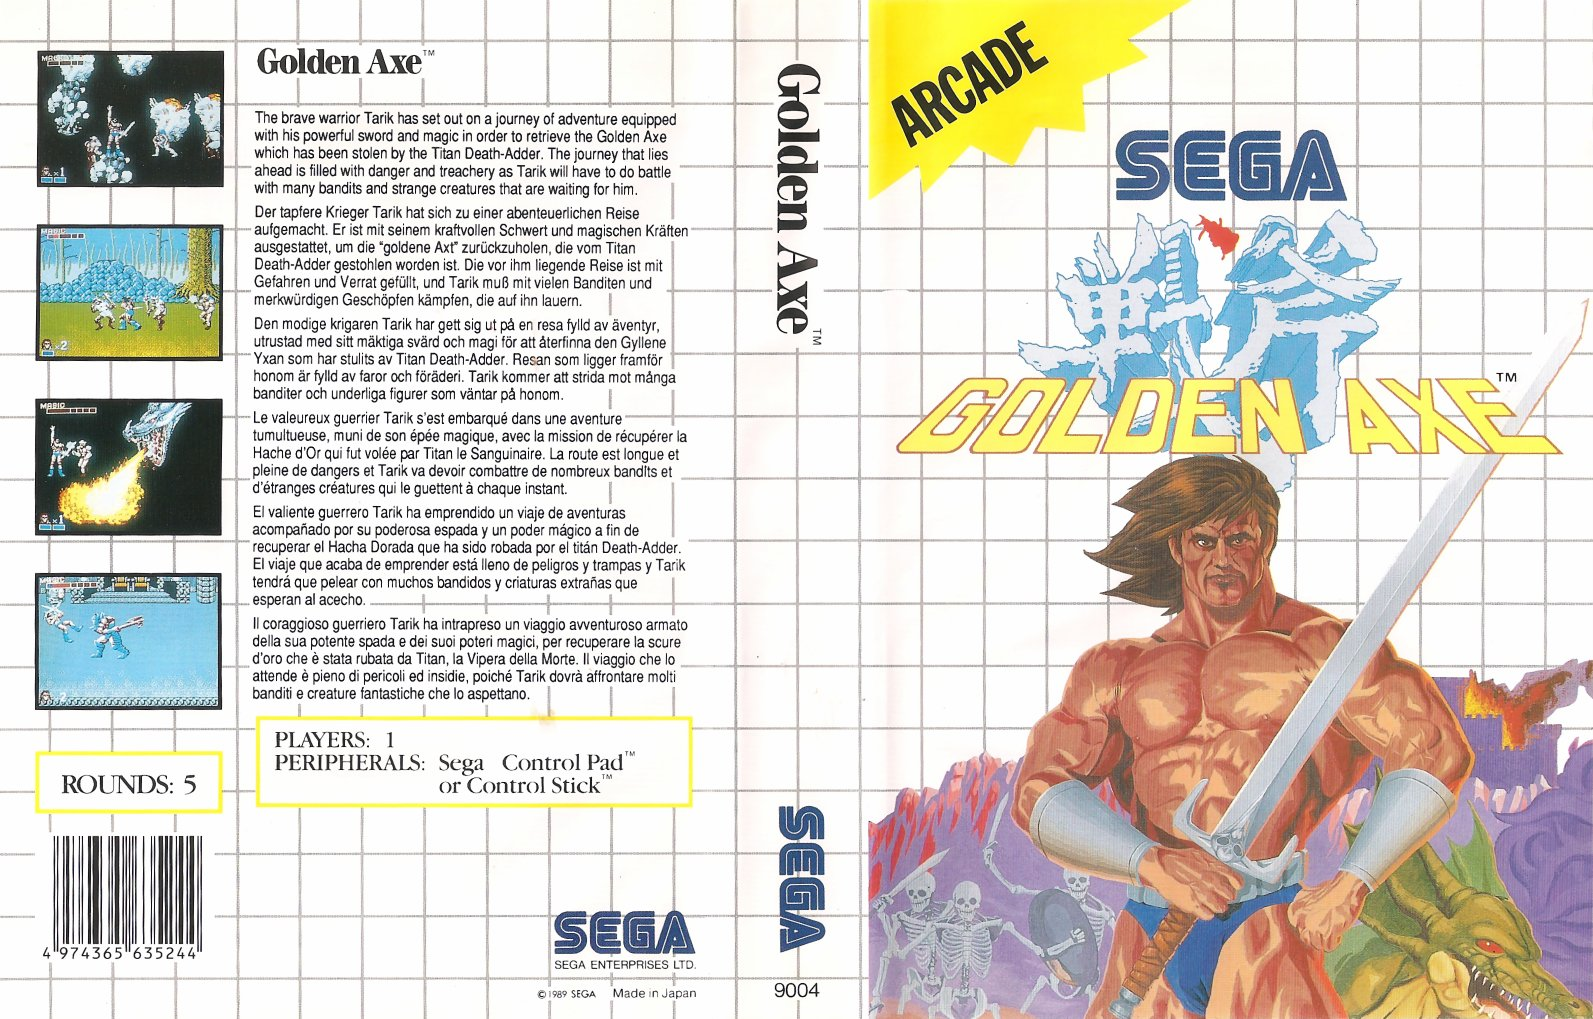 http://www.smspower.org/uploads/Scans/GoldenAxe-SMS-EU-NoR.jpg